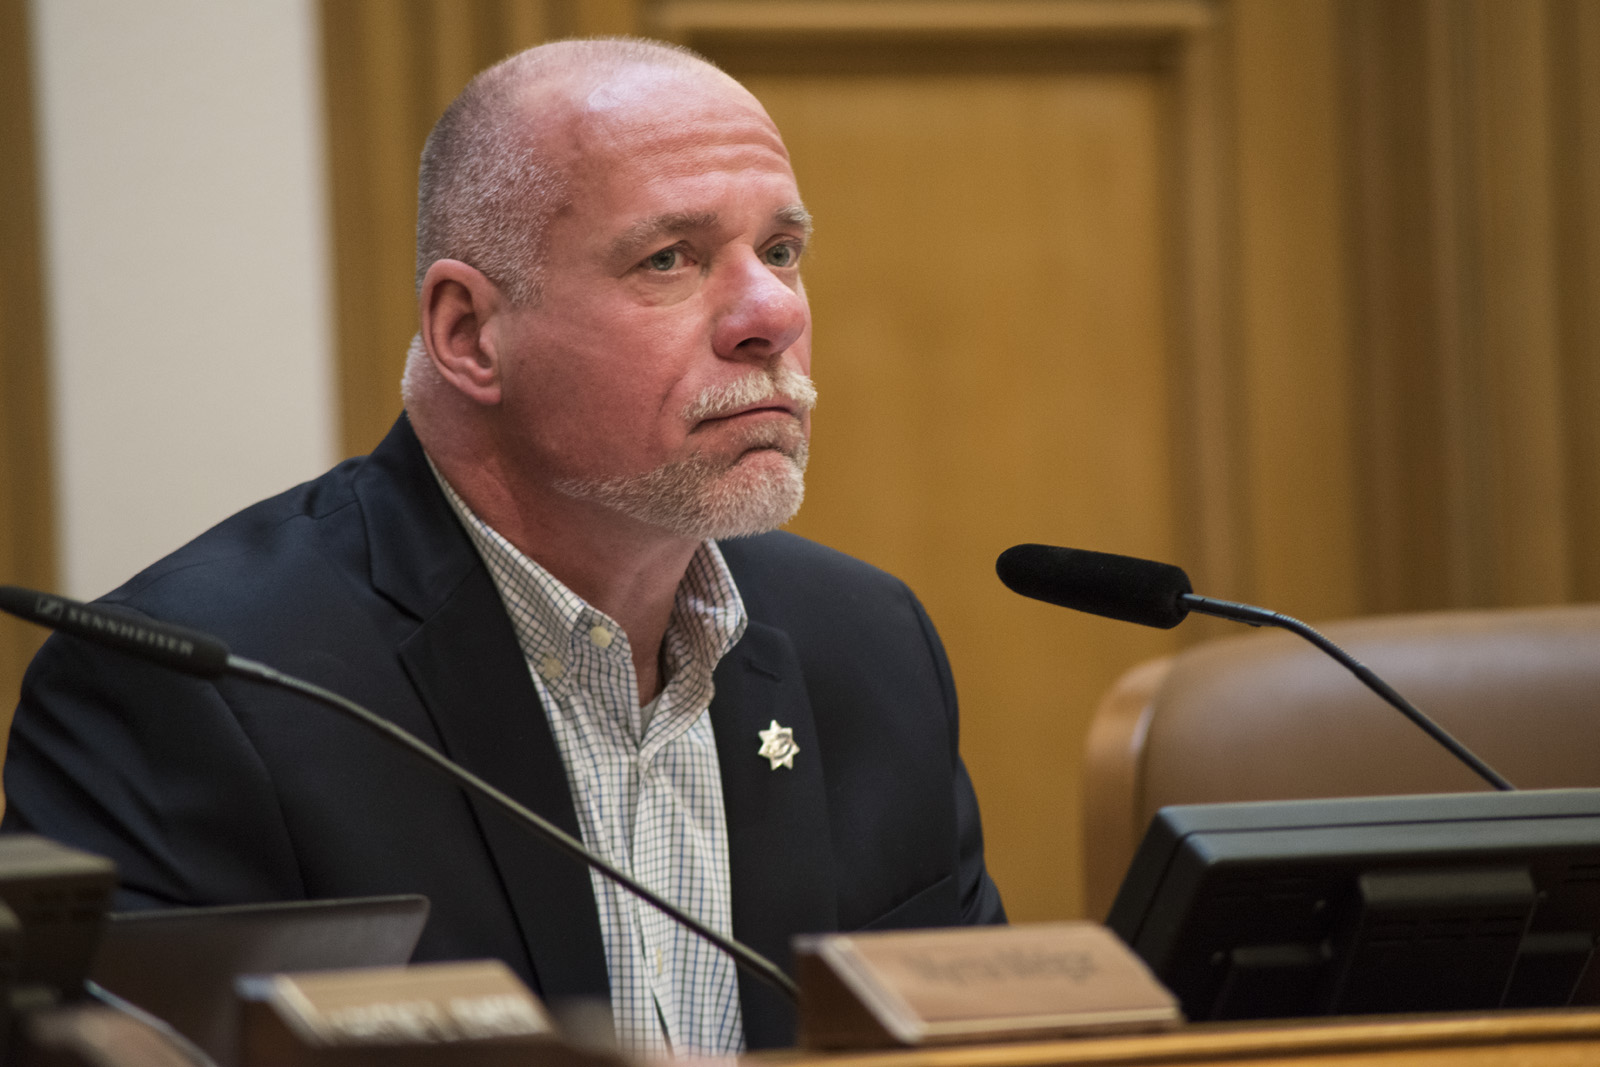 Embattled Planning Commissioner Dennis Richards abruptly resigns, surprising friends and foes